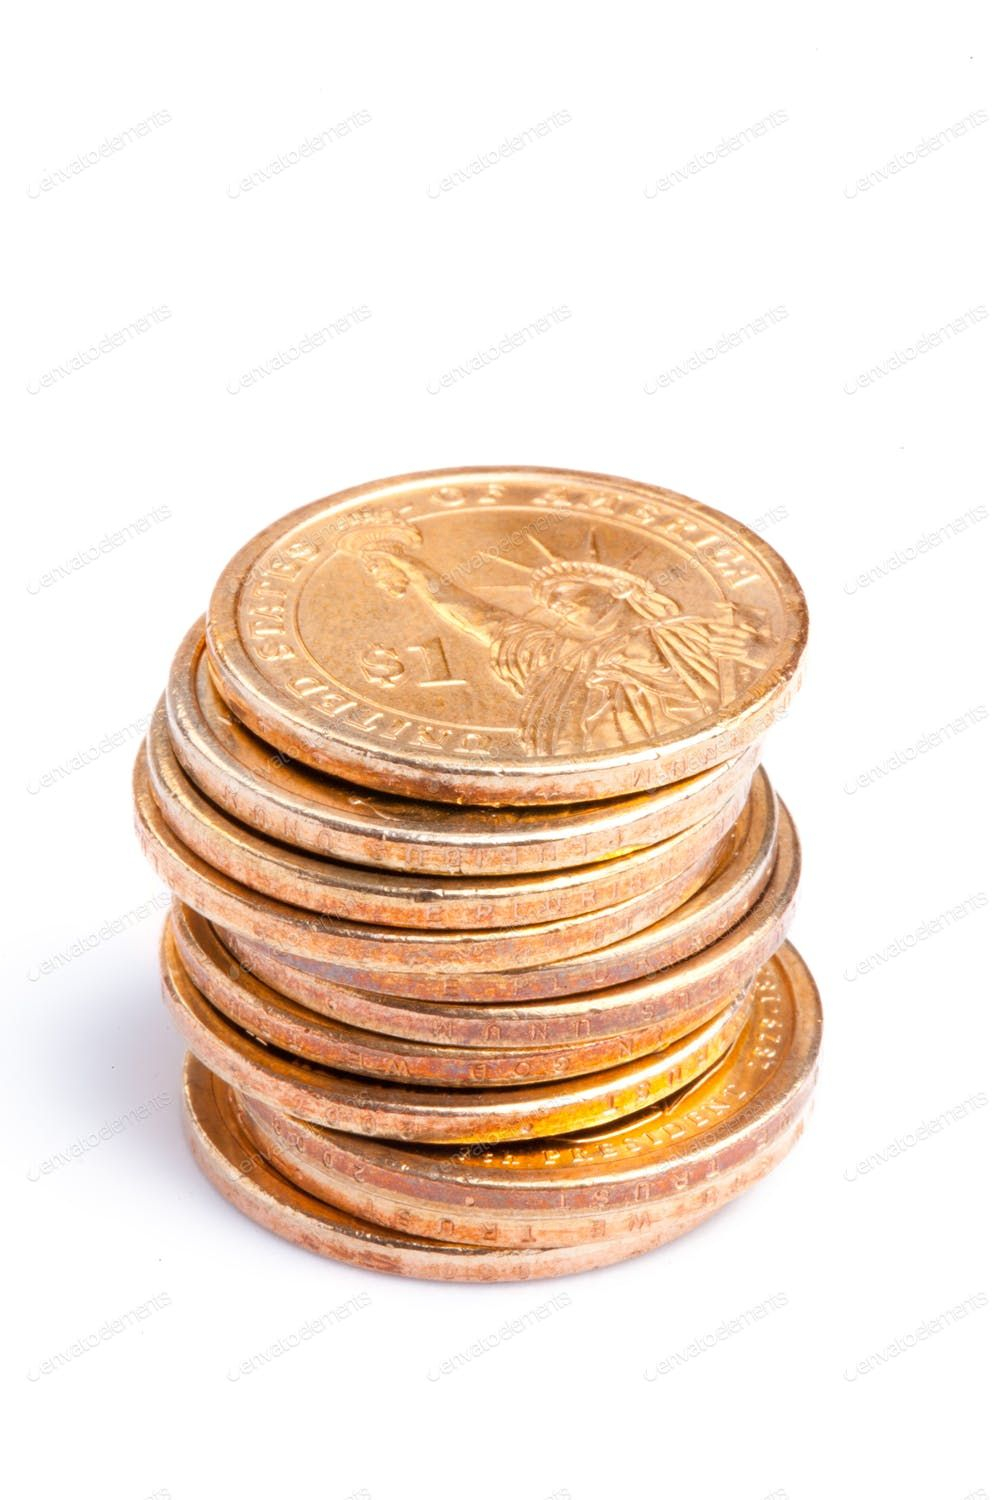 Image result for pile of coins